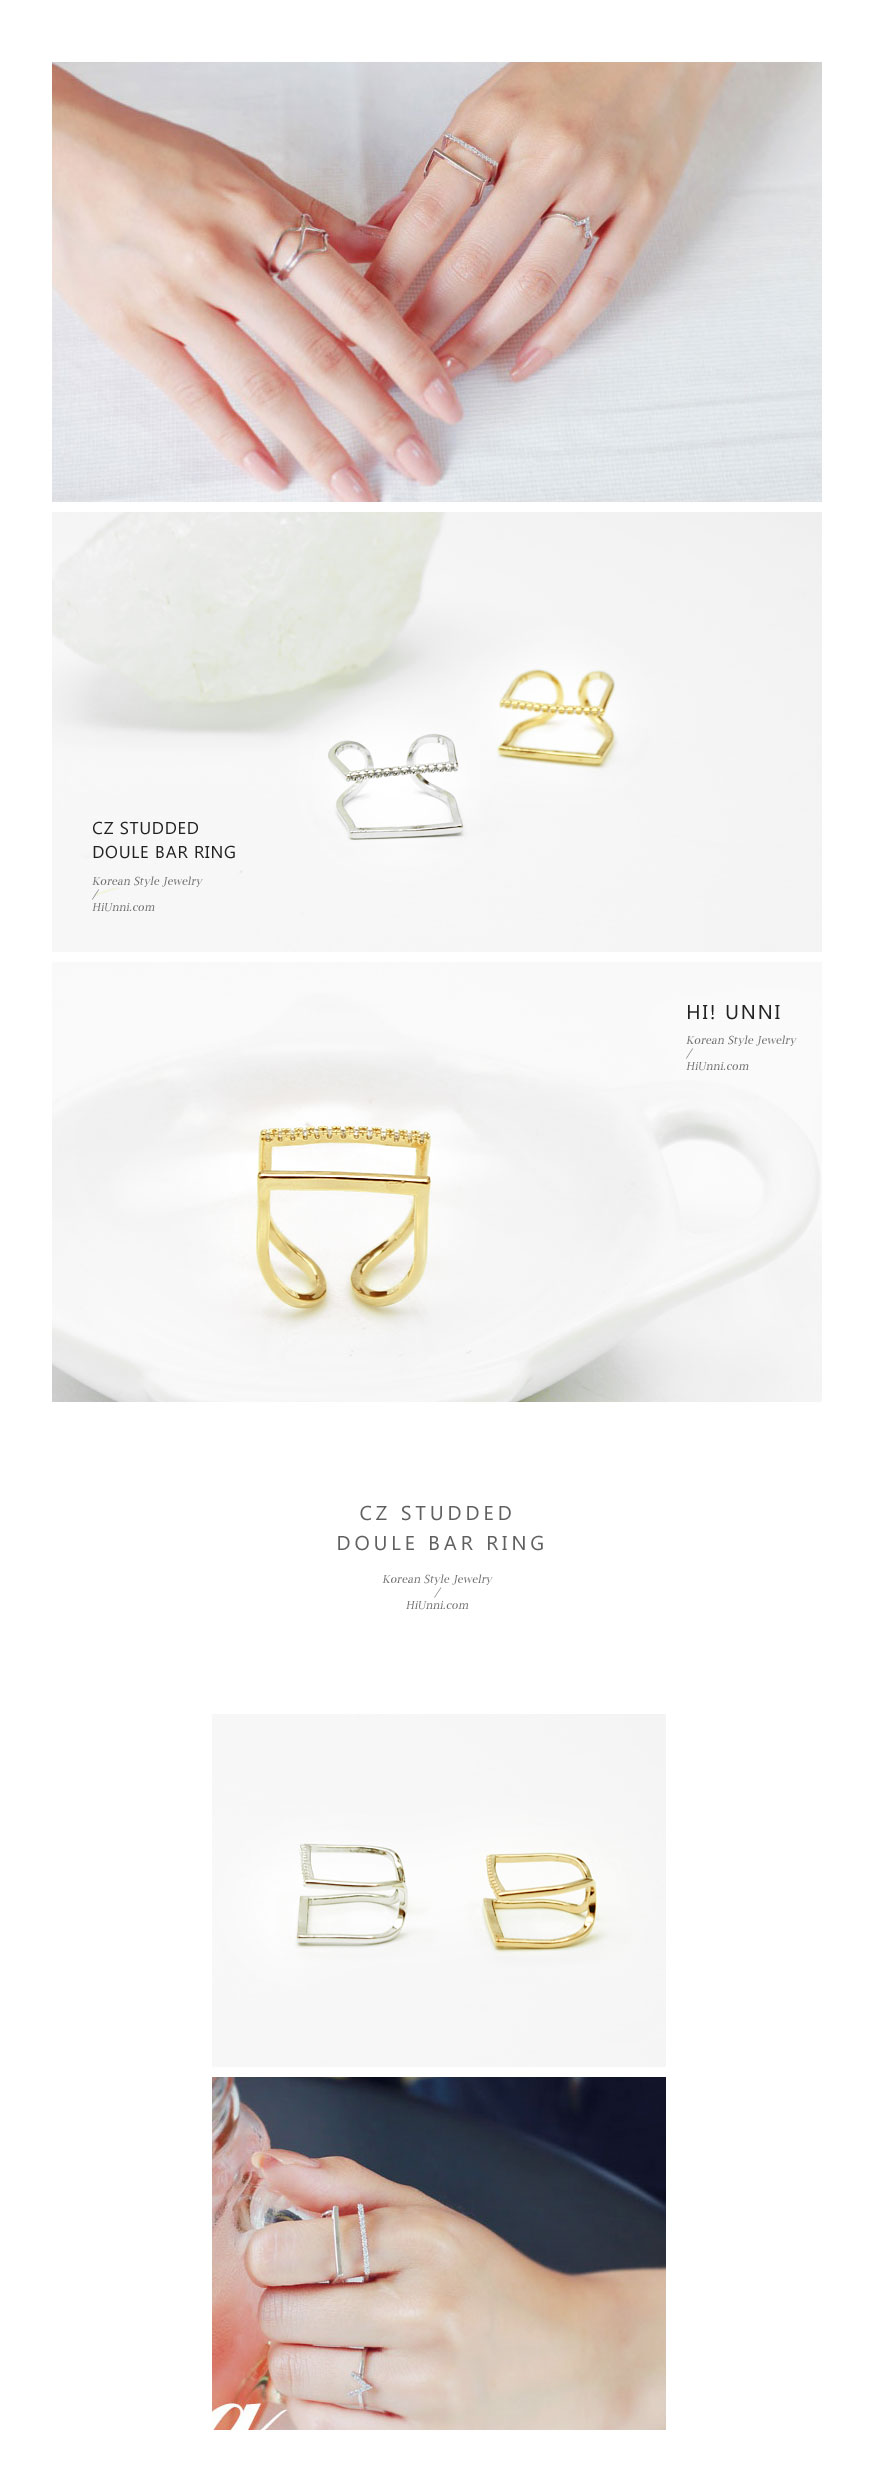 accessories_korean_asian_style_jewelry_open_ring_cz_cubic_zirconia_double_bar_4